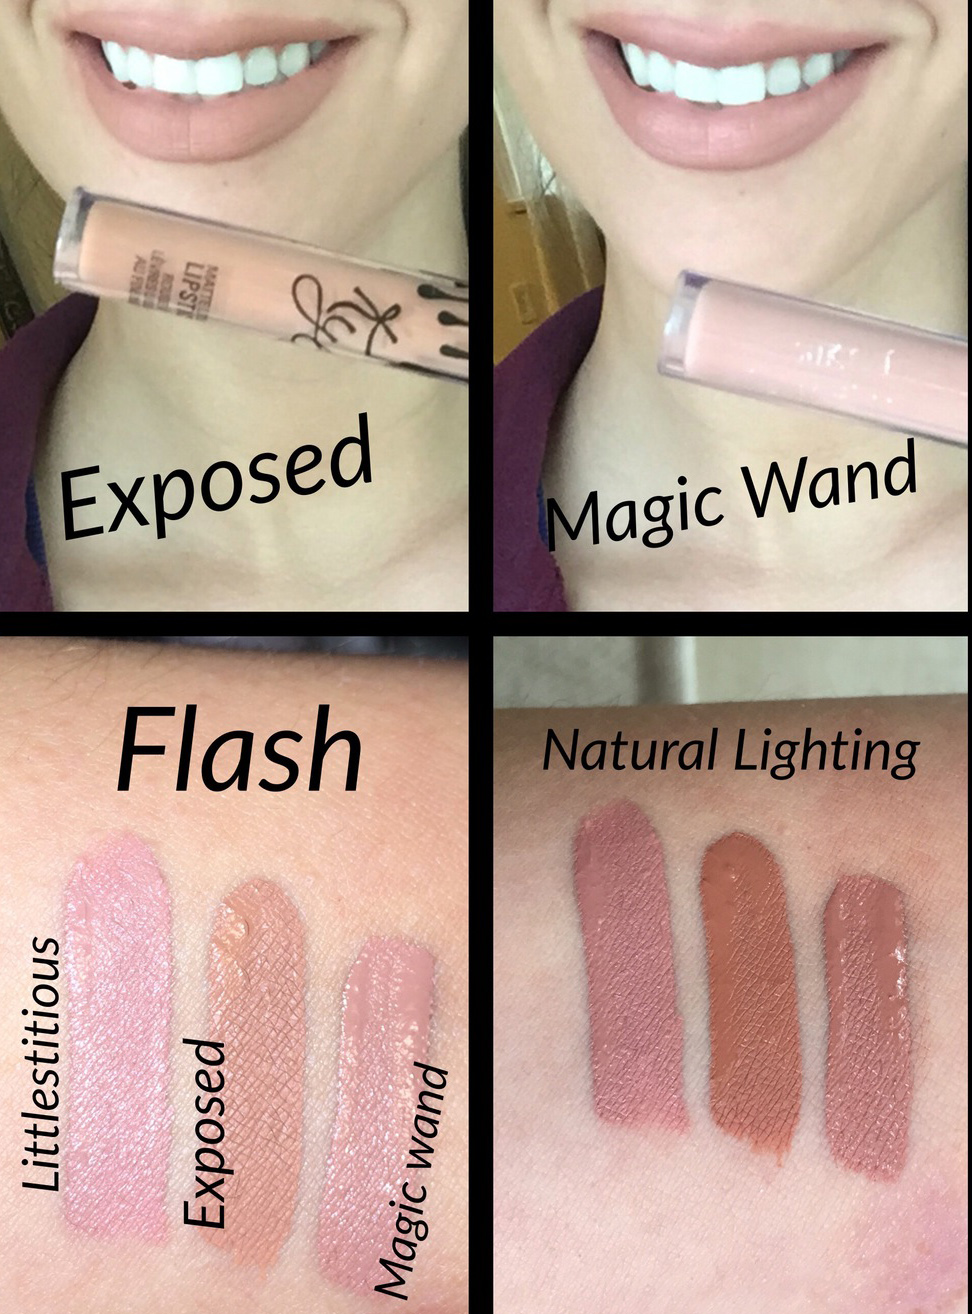 Kylie Jenner Cosmetics Exposed Lipkit Alternatives